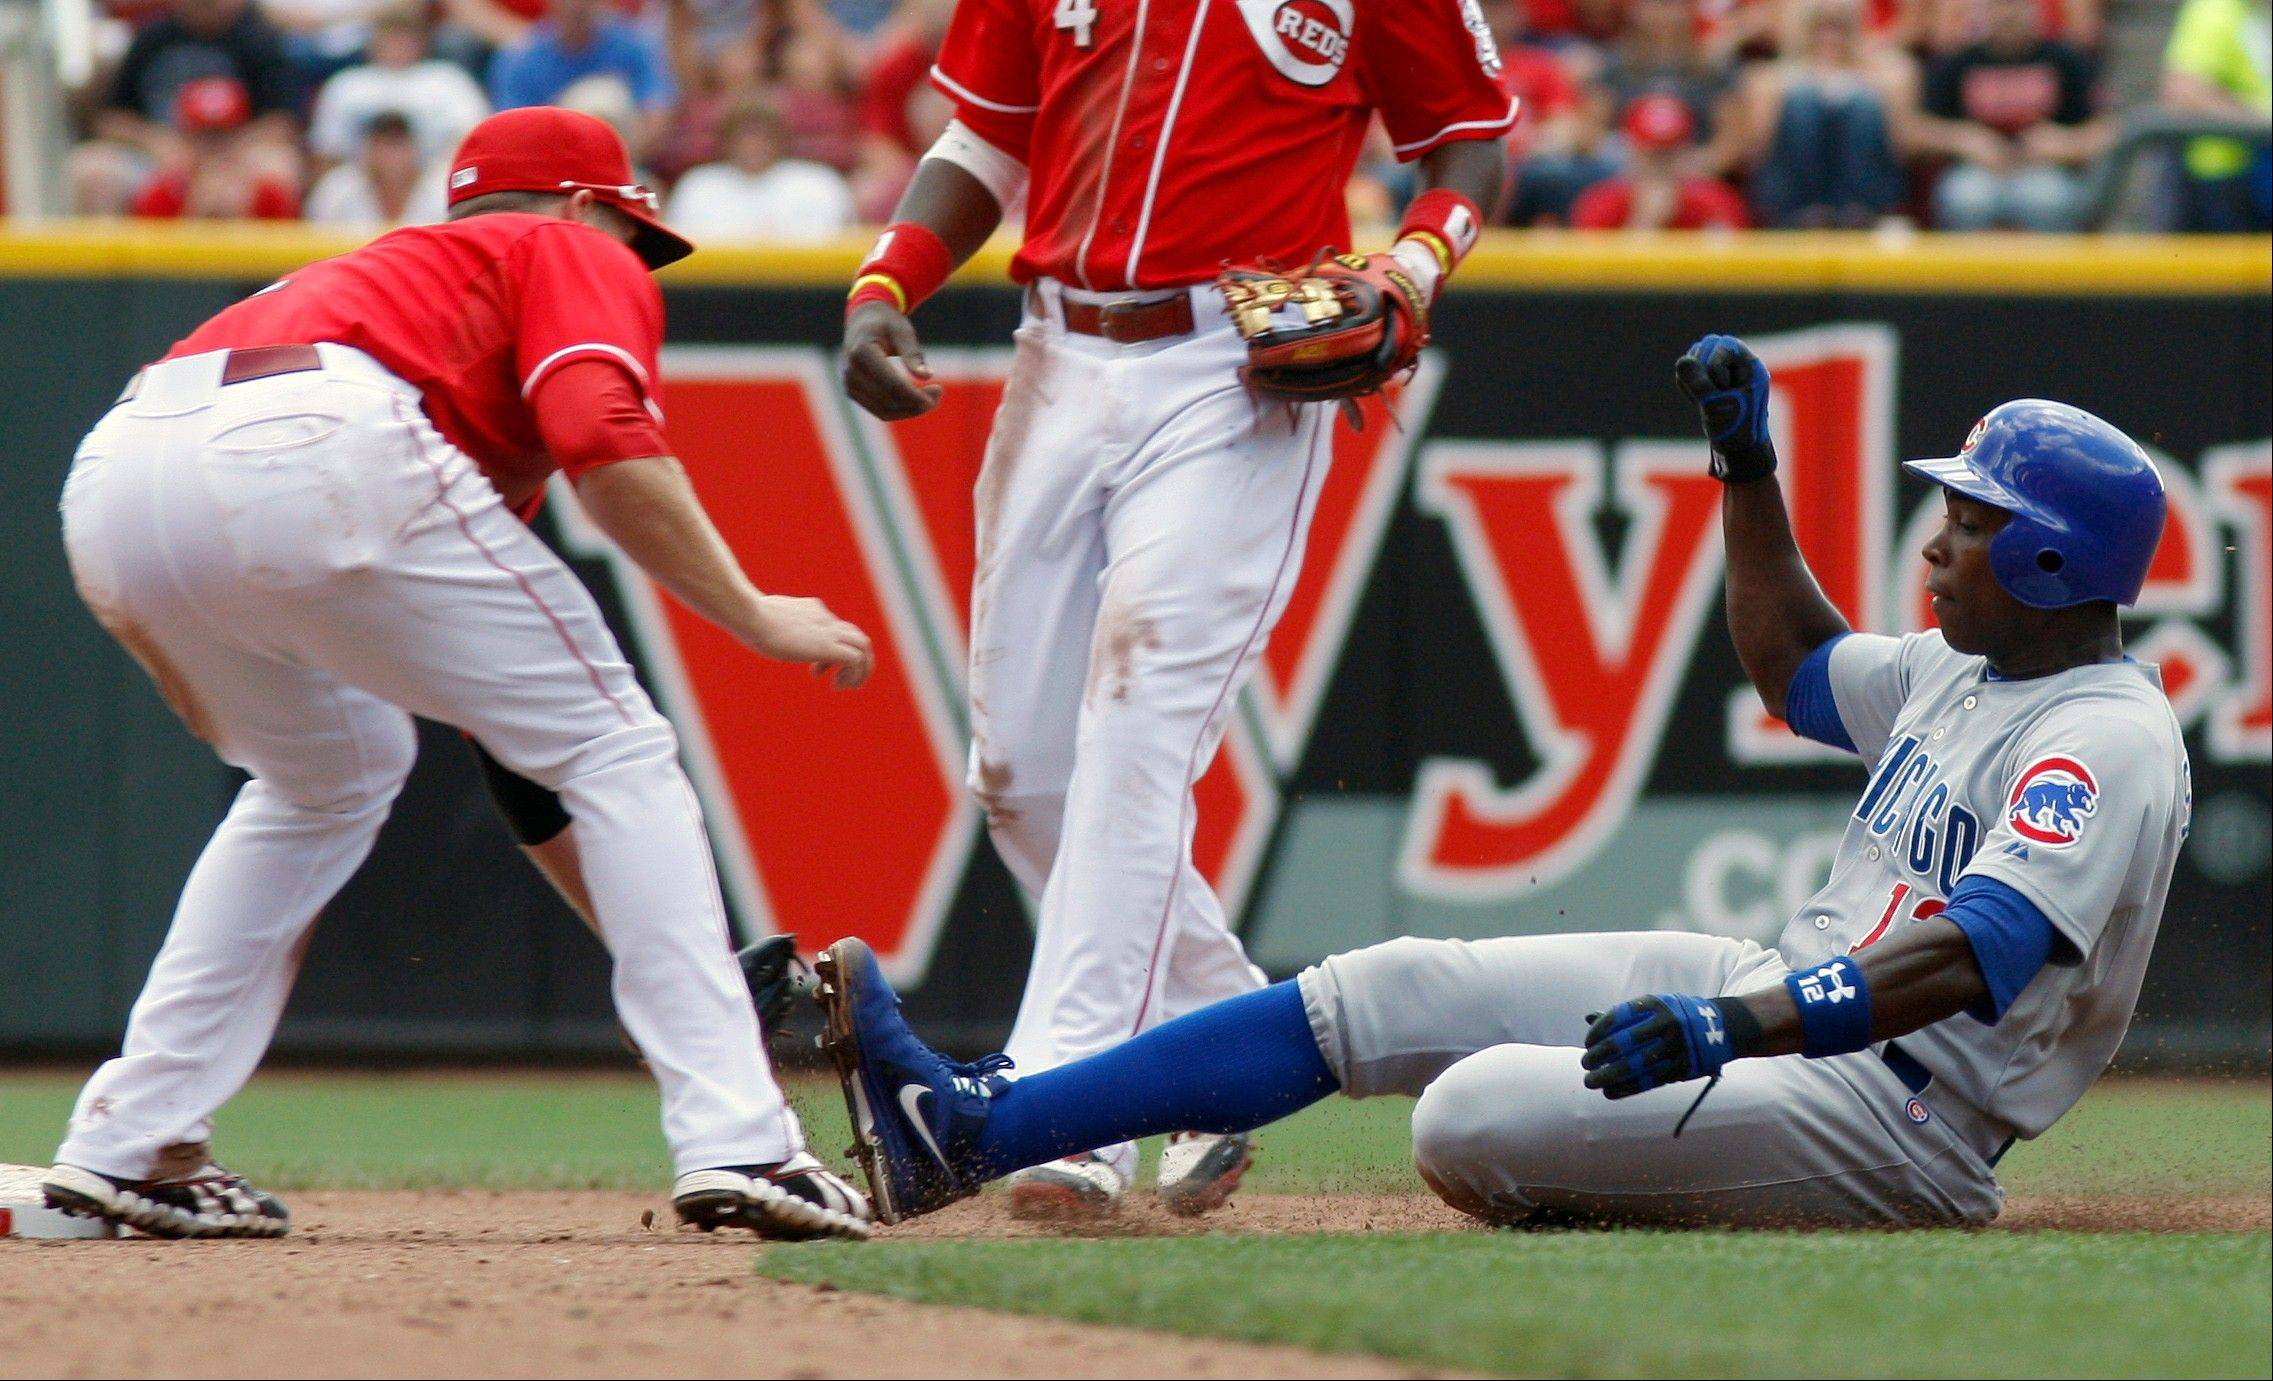 Cubs outfielder Alfonso Soriano, right, is tagged out by Cincinnati Reds shortstop Zack Cozart, left, after being caught stealing second base in Sunday's fourth inning in Cincinnati.